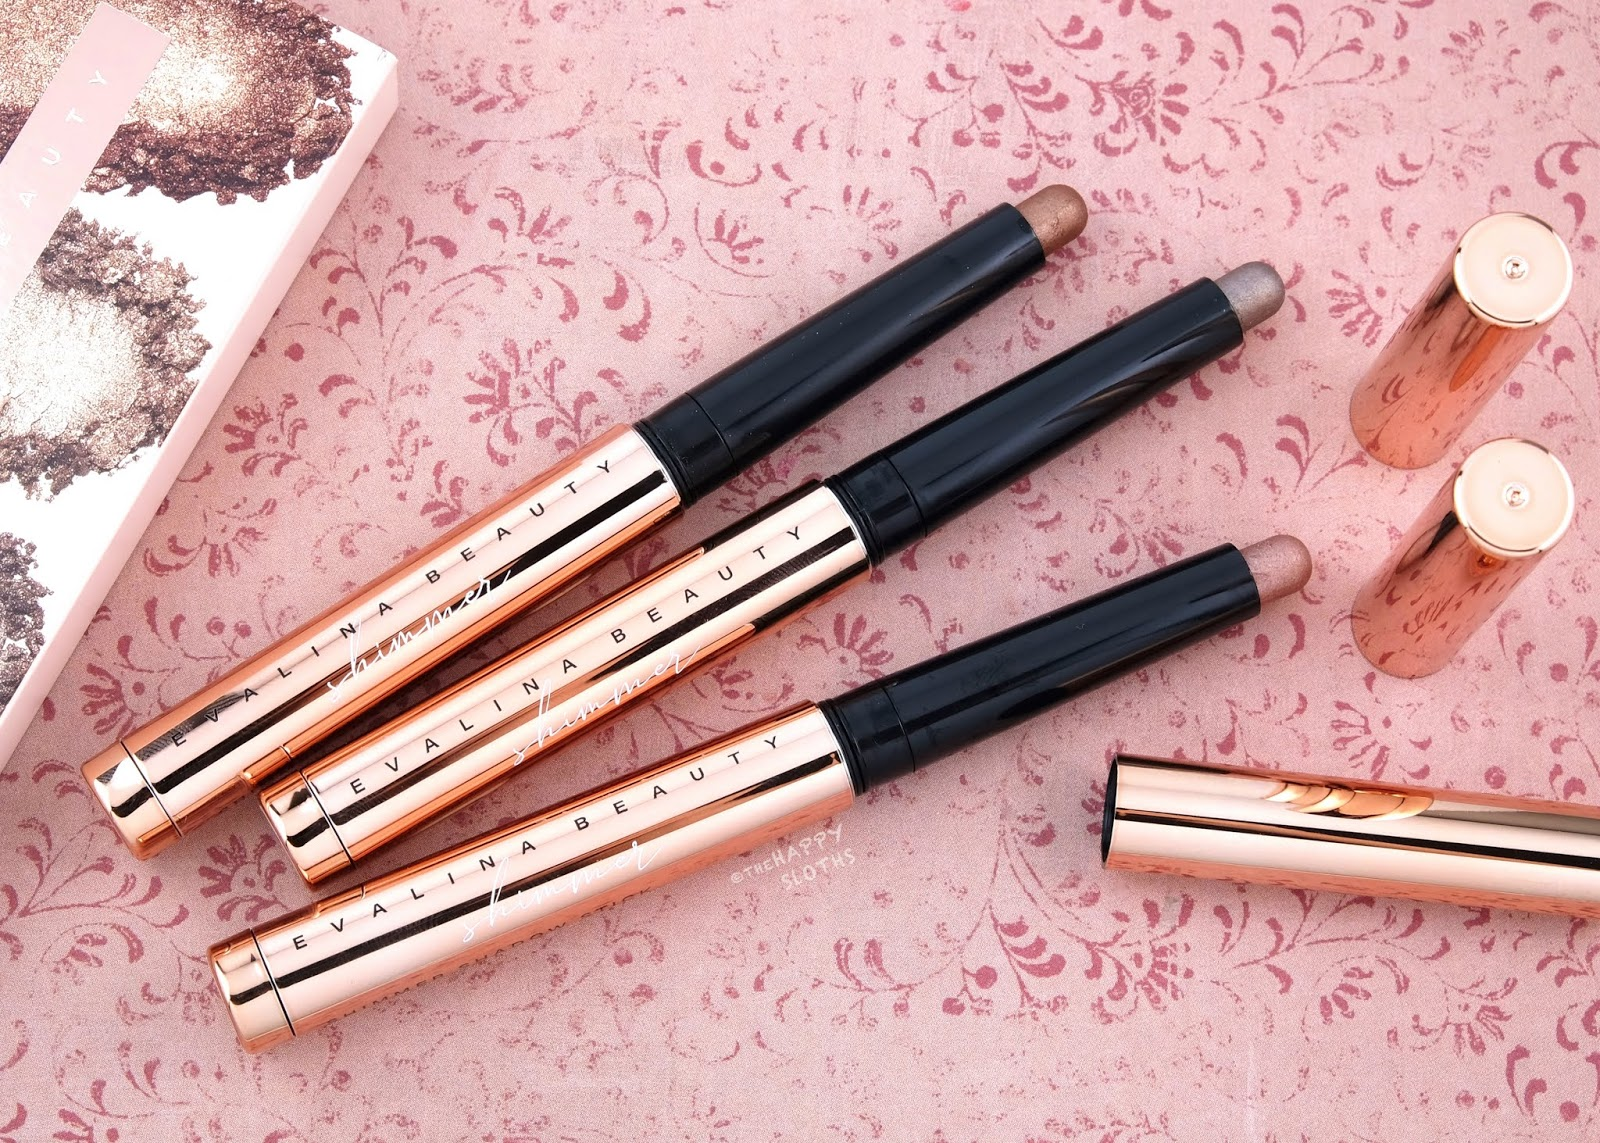 Evalina Beauty | Shimmer Eyeshadow Stick: Review and Swatches